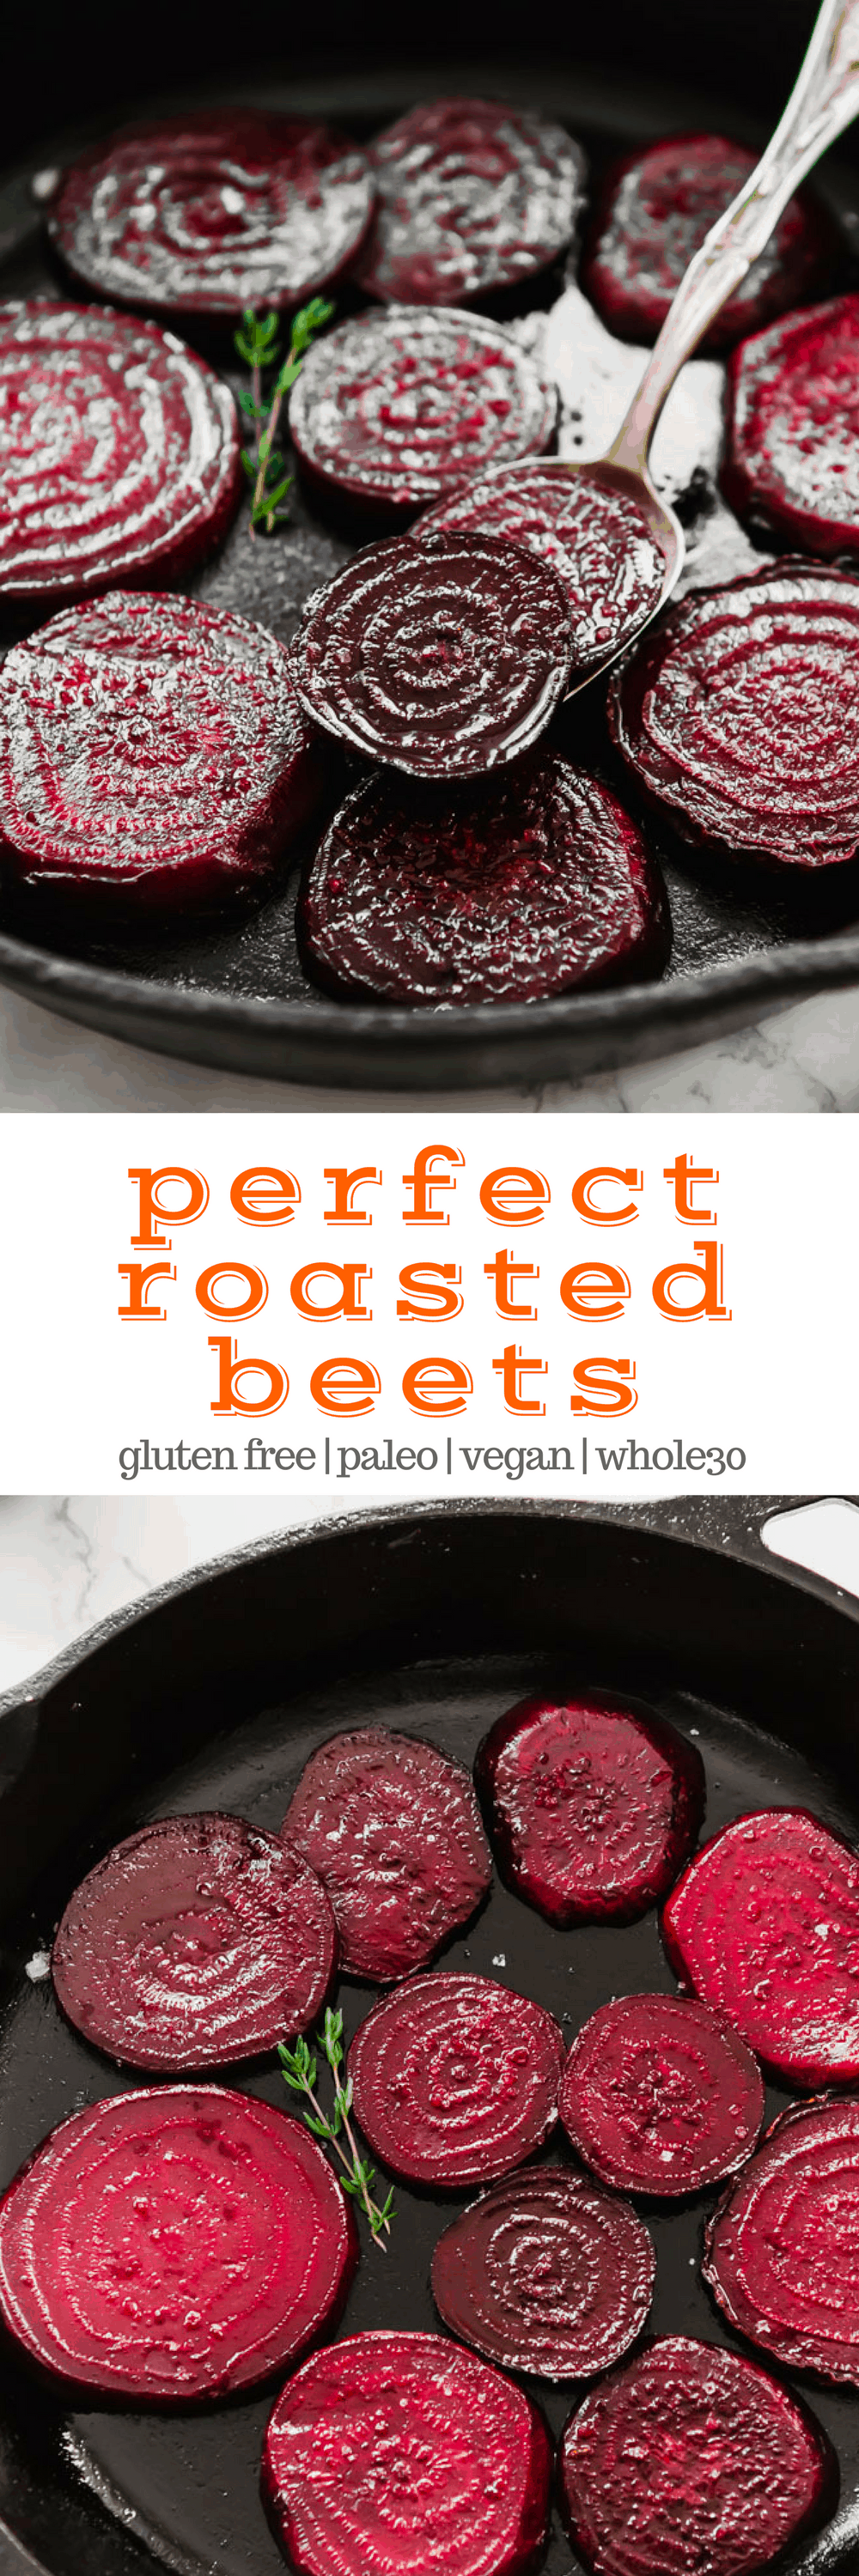 Properly roasted beets are a far cry from those soggy tasteless pink slabs that come in a can. Roasted beets are sweet, rich, tender, and an incredible addition to salads - or great on their own!